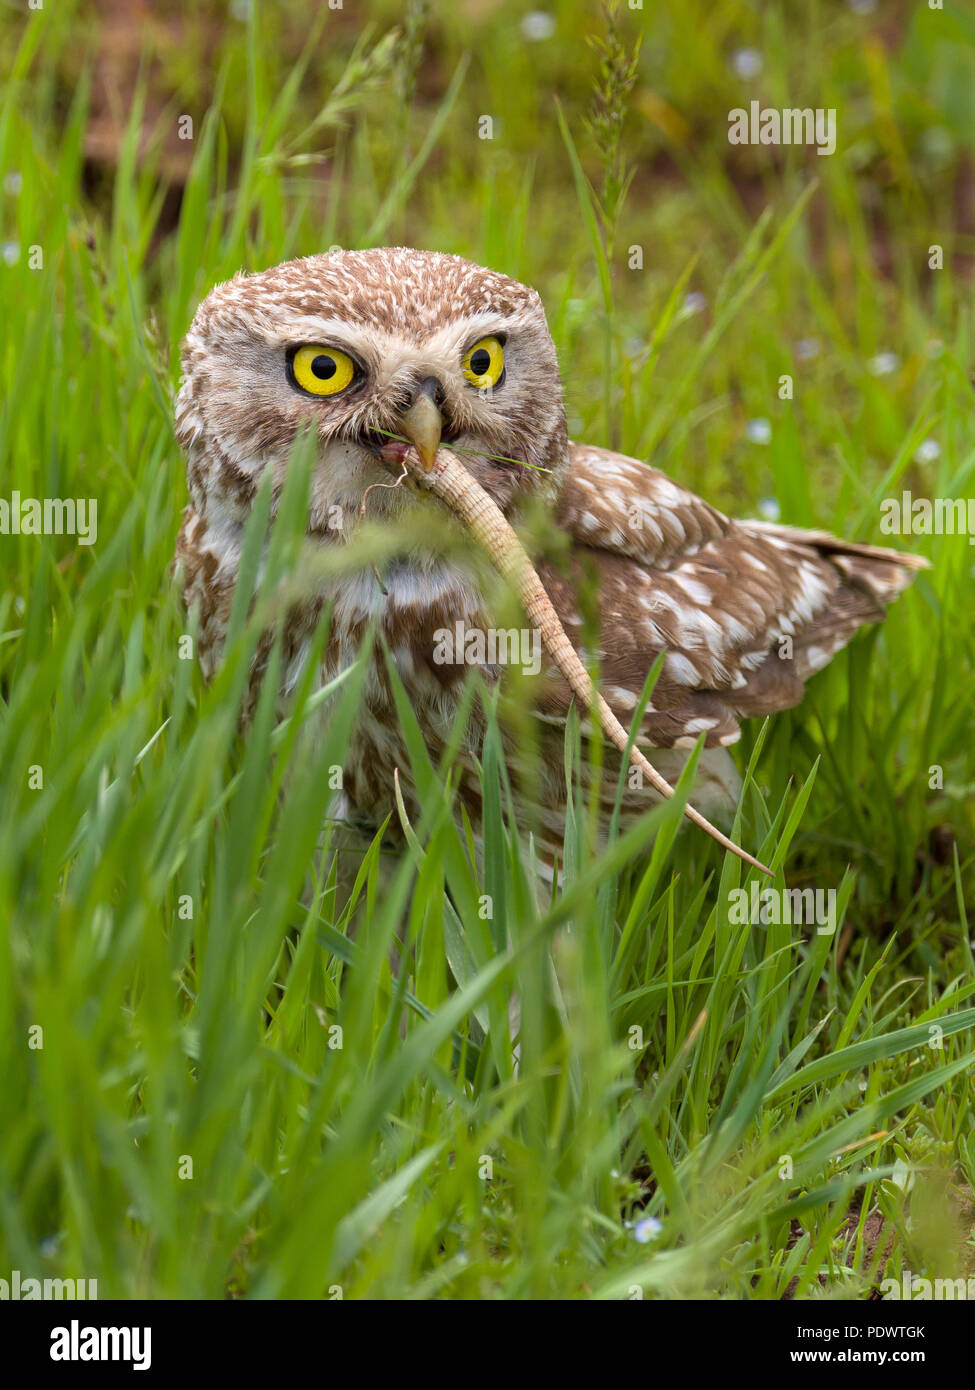 Little Owl eating a lizzard. - Stock Image